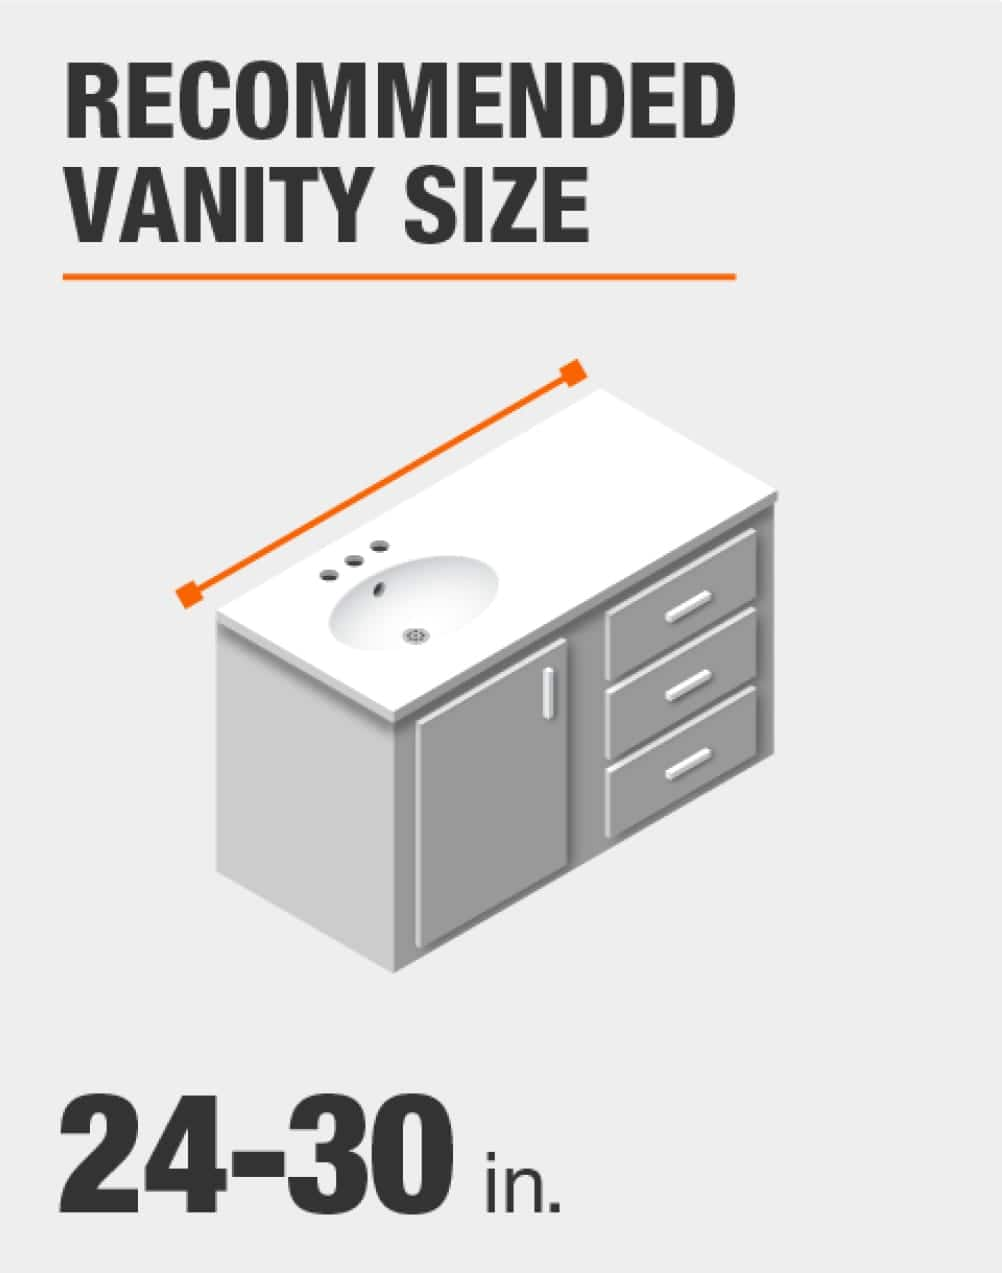 recommended vanity size of 24 to 30 inches wide